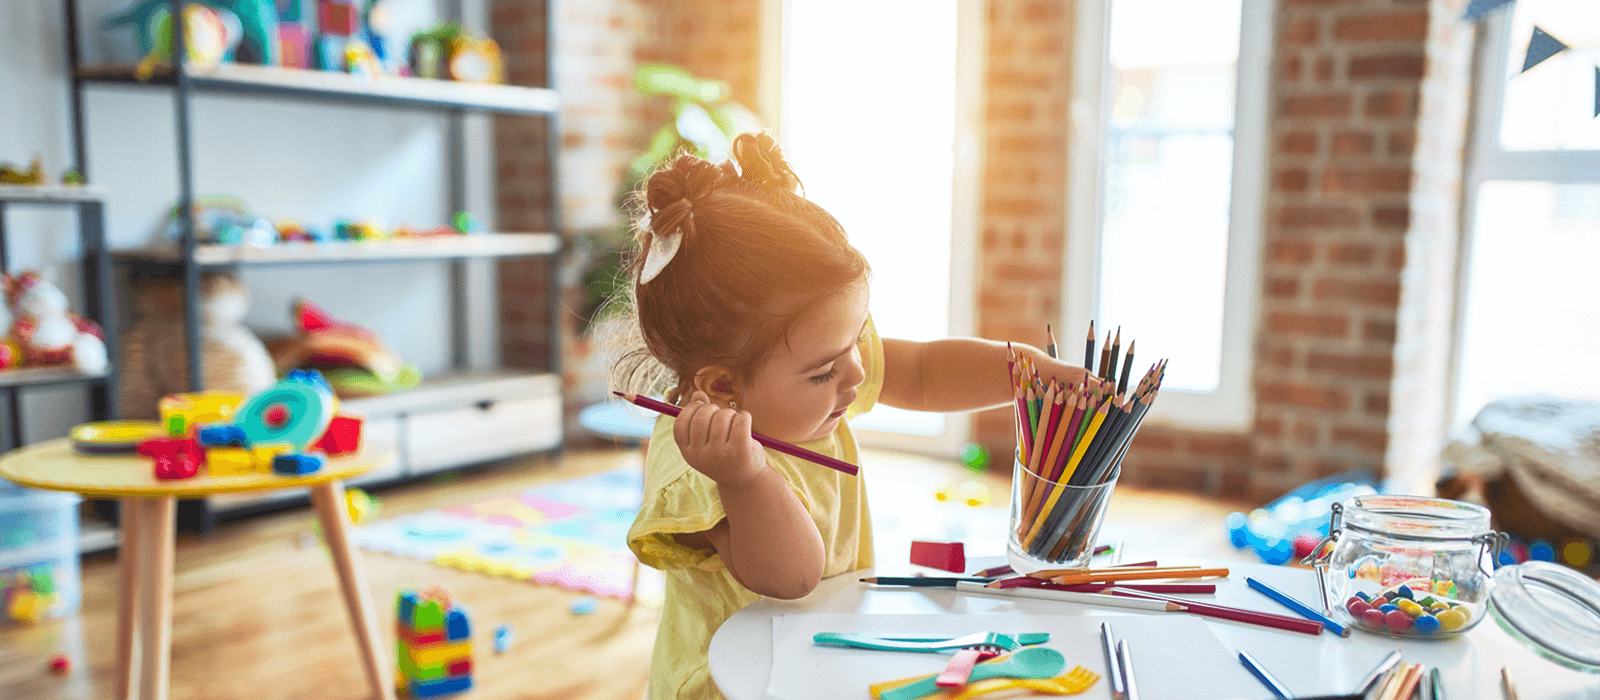 A small child selects a colored pencil while working on a colorful drawing.